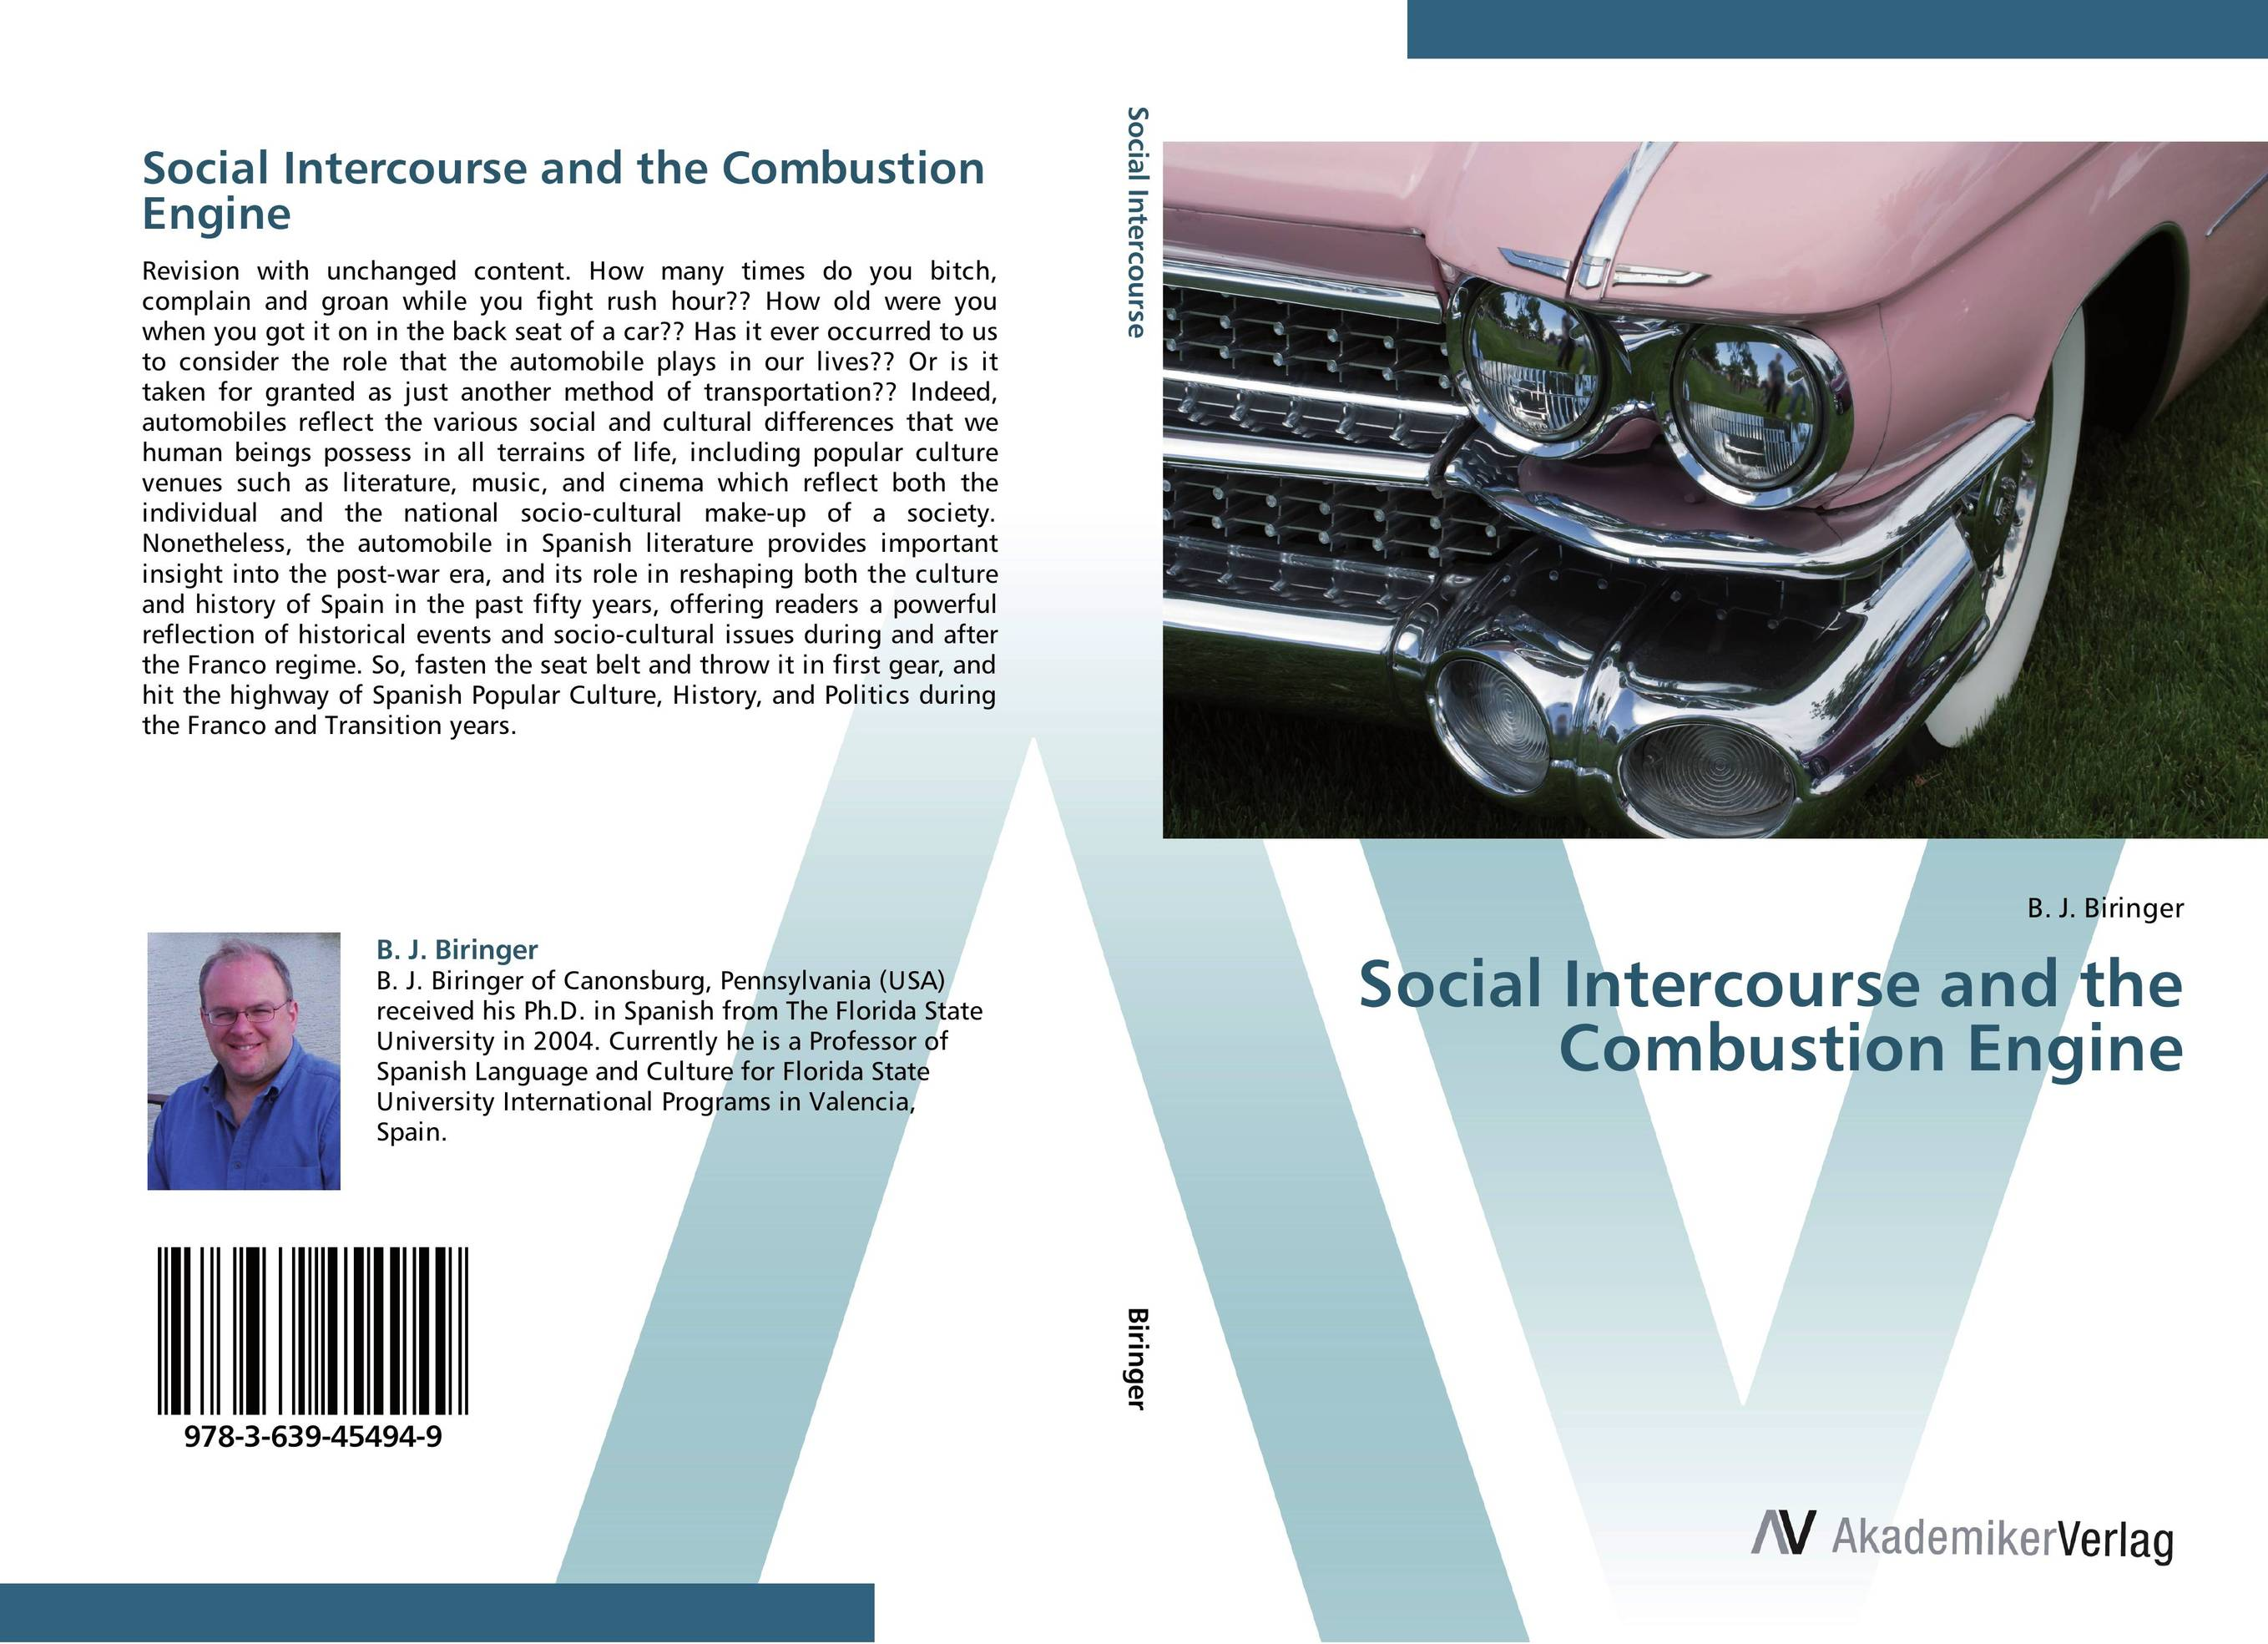 Social Intercourse and the Combustion Engine сысоев п сысоева л issues in us culture and society амер культура и общество